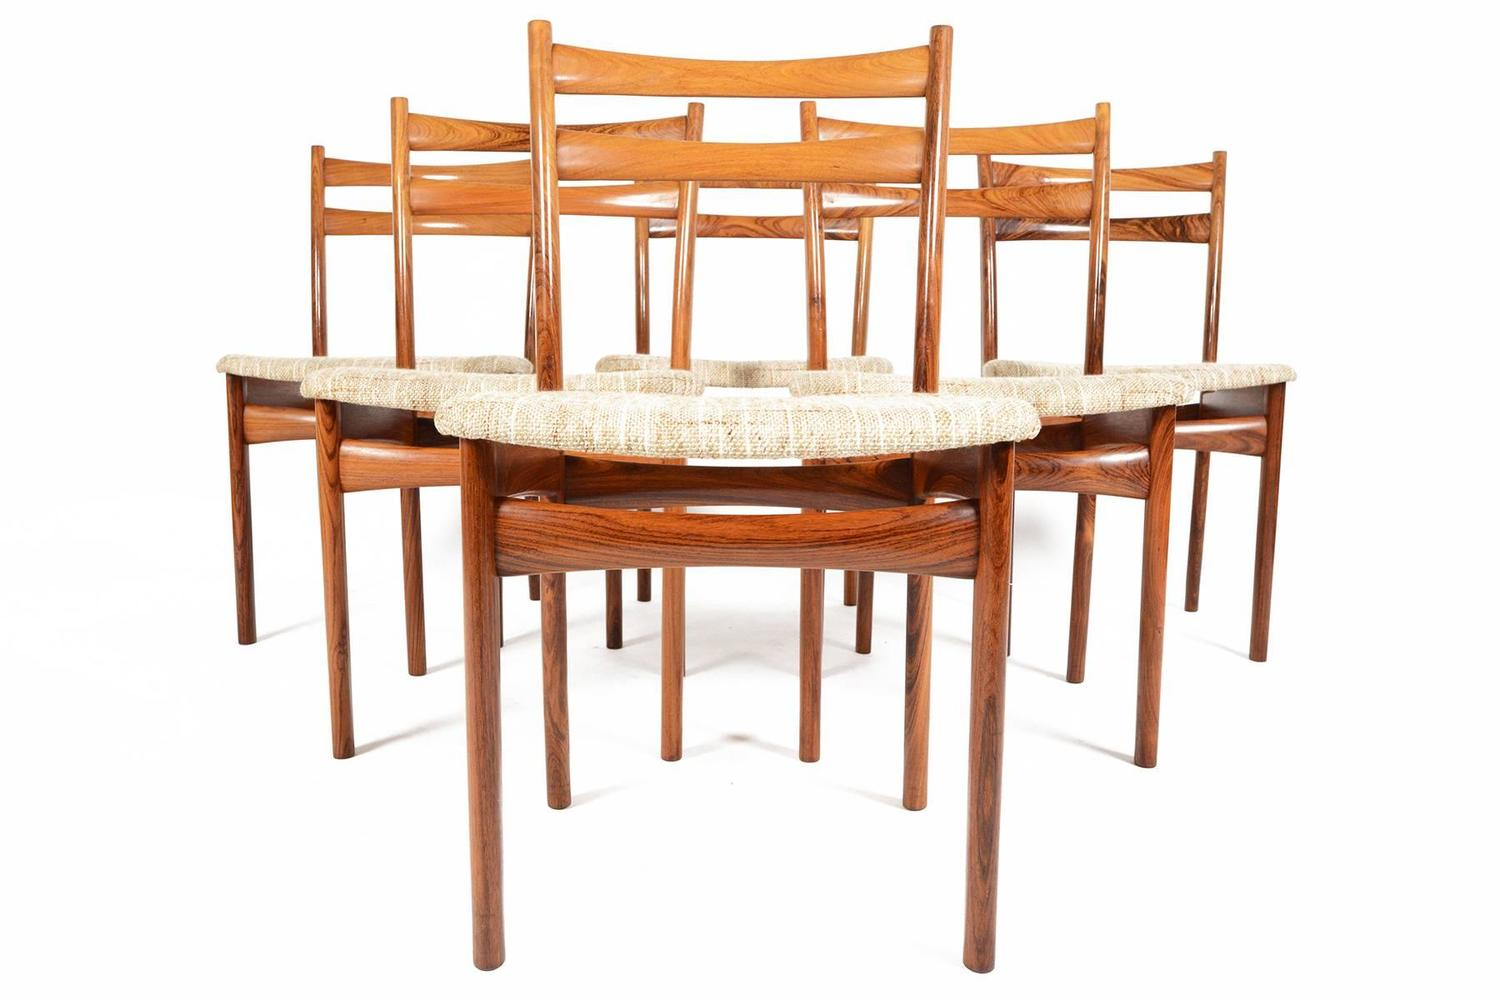 skovby rosewood dining chairs upholstered office chair on casters set of six møbelfabrik for